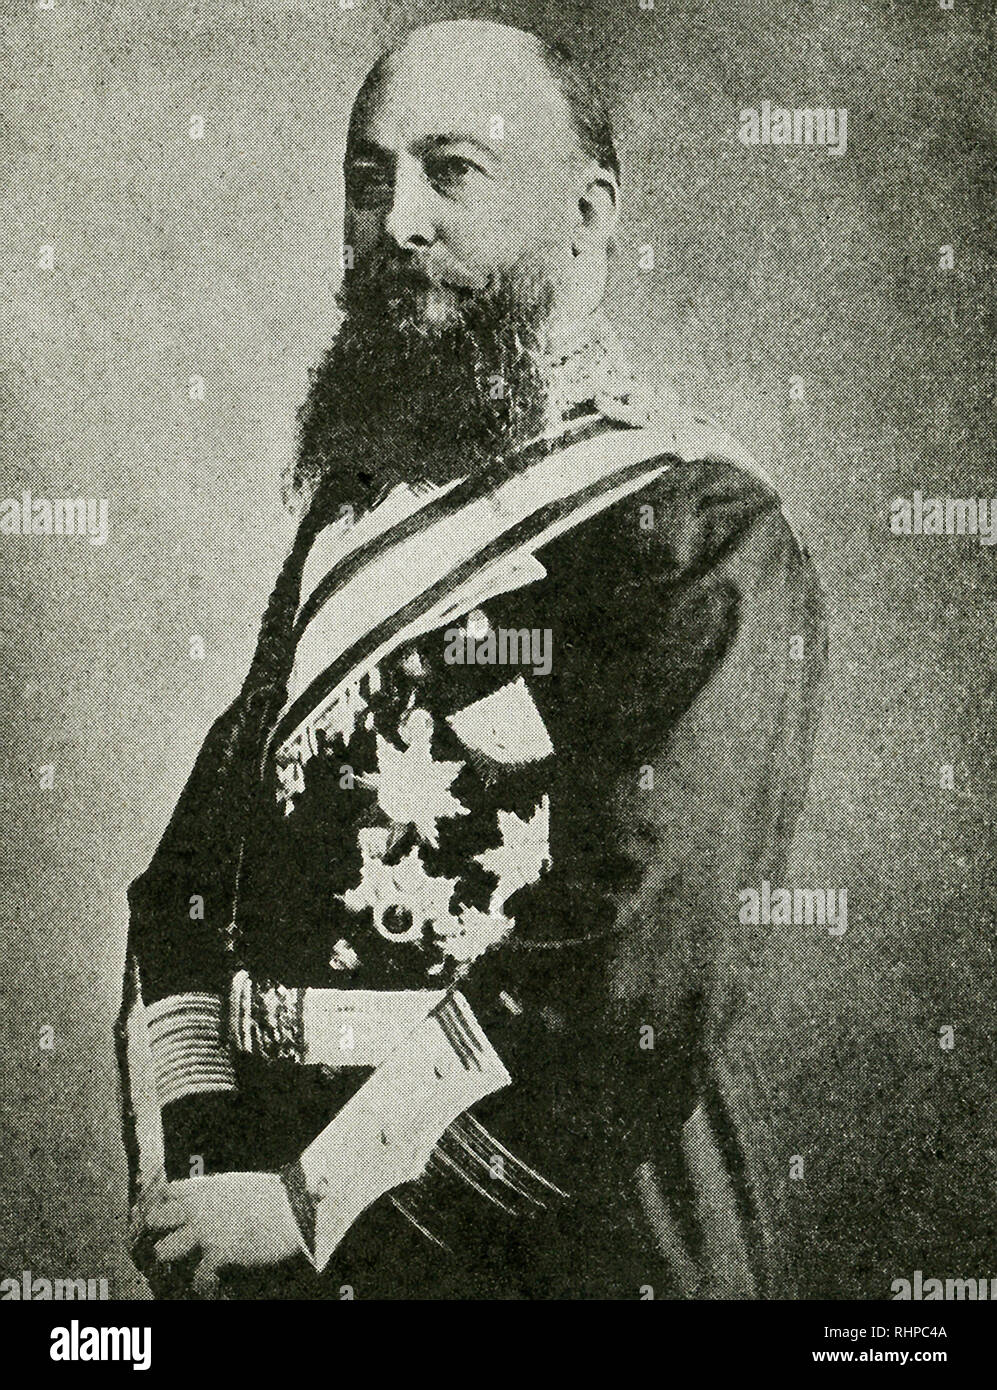 The caption reads: Von Tirpitz of the German Navy whose ruthless submarine warfare against women and children shocked the world. The photo dates to World War I. Alfred von Tirpitz was a German Grand Admiral and served as Secretary of State of the German Imperial Naval Office from 1897 until 1916. - Stock Image